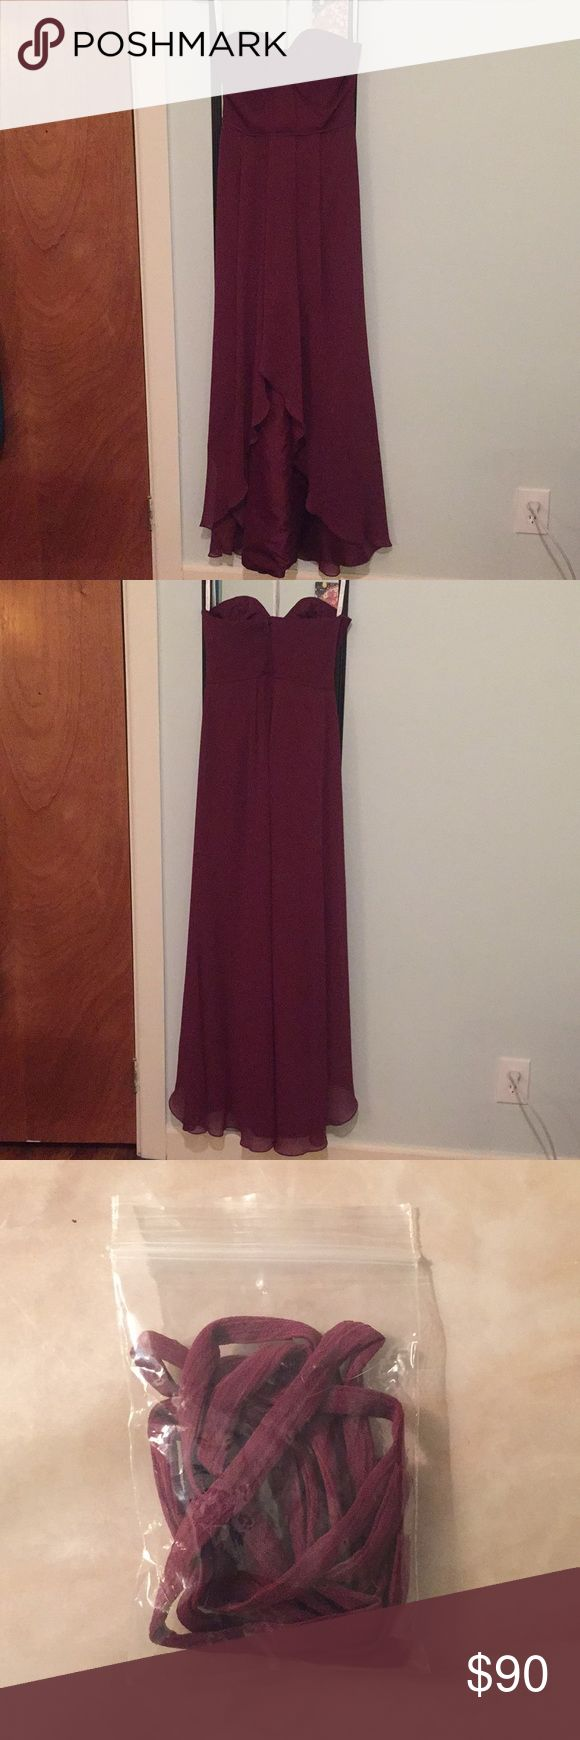 David's Bridal High-Low Bridesmaid Dress - Merlot David's Bridal Bridesmaid Dress - UNALTERED  Size 6 - unaltered. Strapless (comes with attachable straps) sweetheart neckline, A-line waist, high-low hemline, boning in bodice, polyester double lining, crepe overlay  Picture #4: dress is last one on the right Picture #5: second one in from the left (color not accurately represented in this picture) Dresses High Low